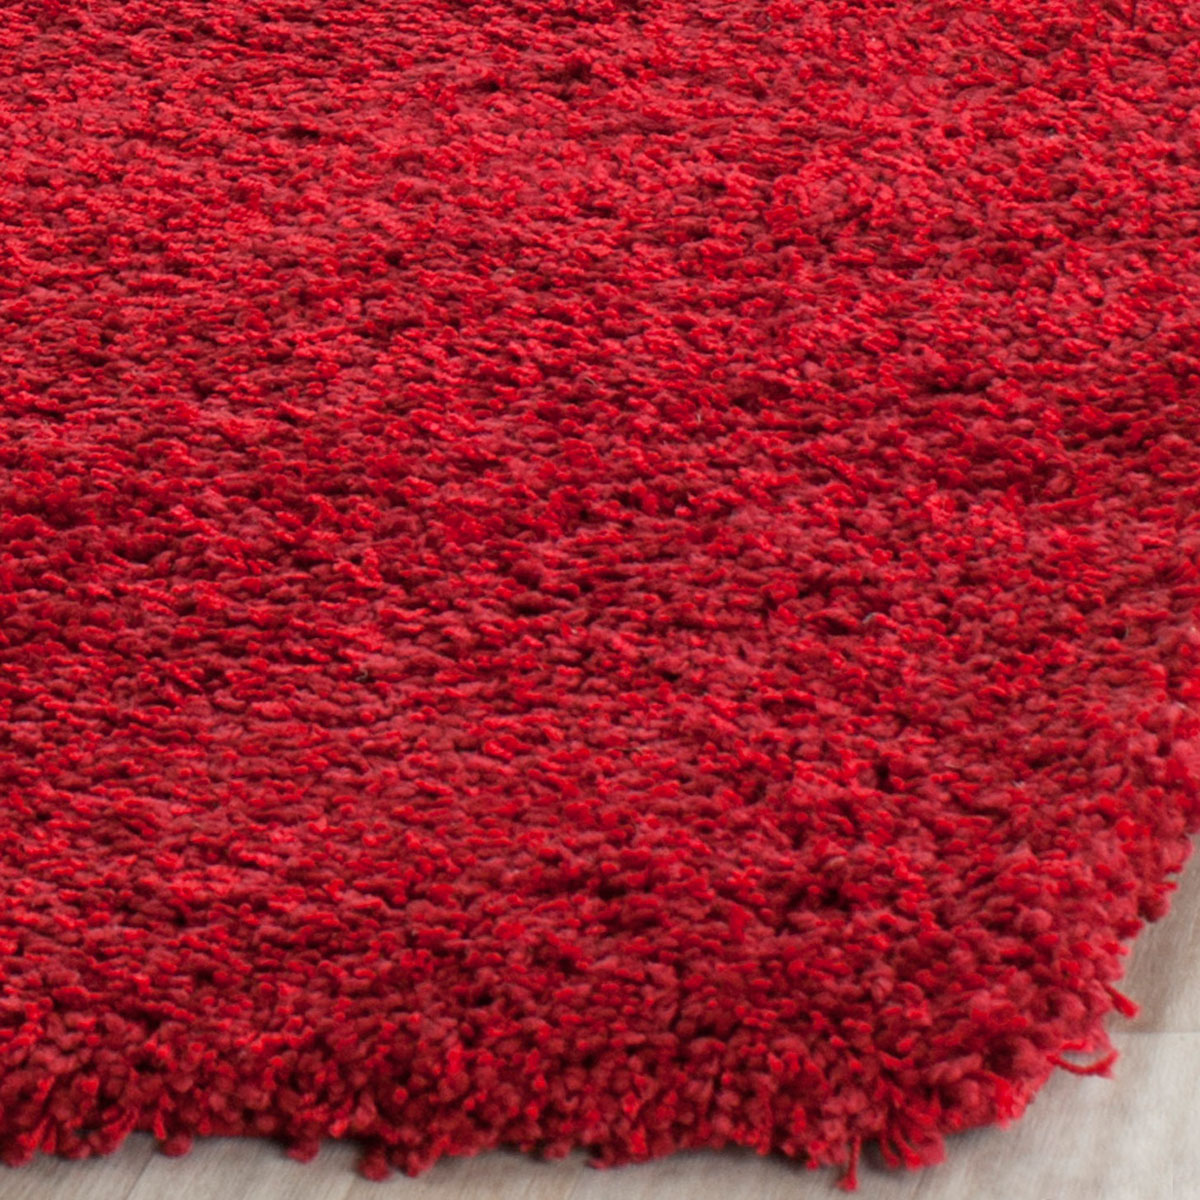 Fabulous Plush Red Shag Rug | California Shags - Safavieh MX67